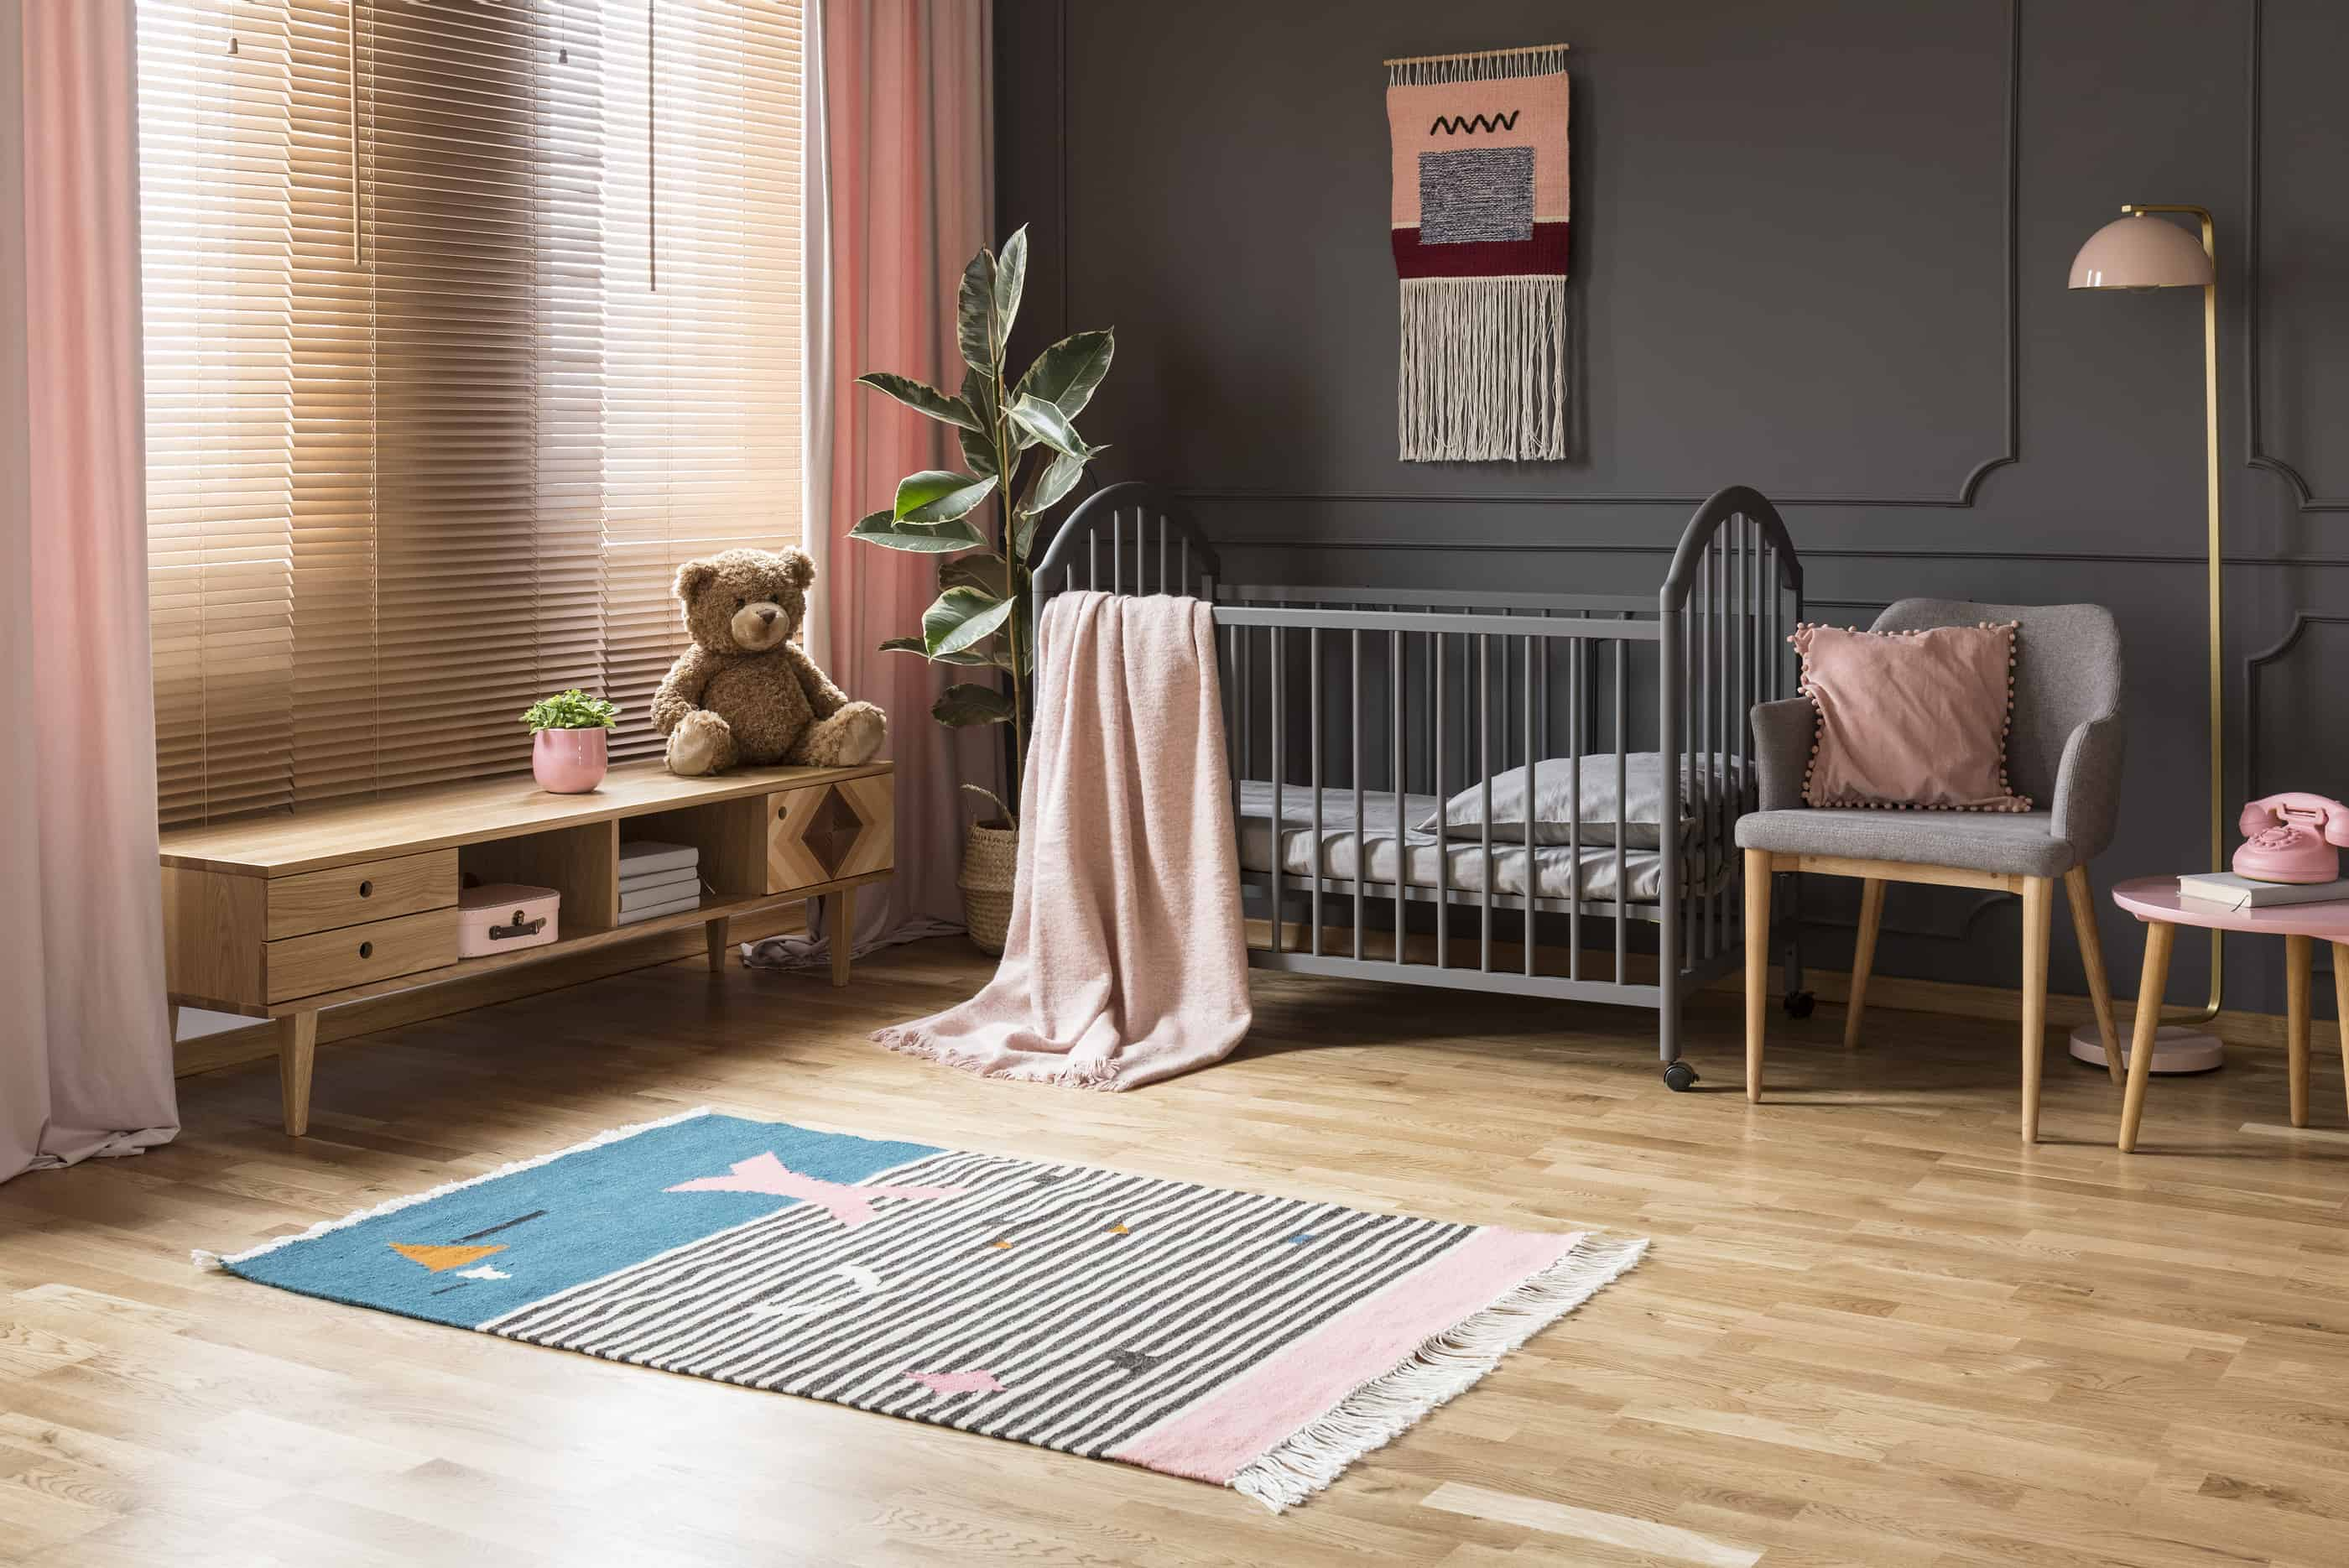 Remodeled baby room and nursery with natural light filtering into through the window with dusty rose curtains on the gray painted walls